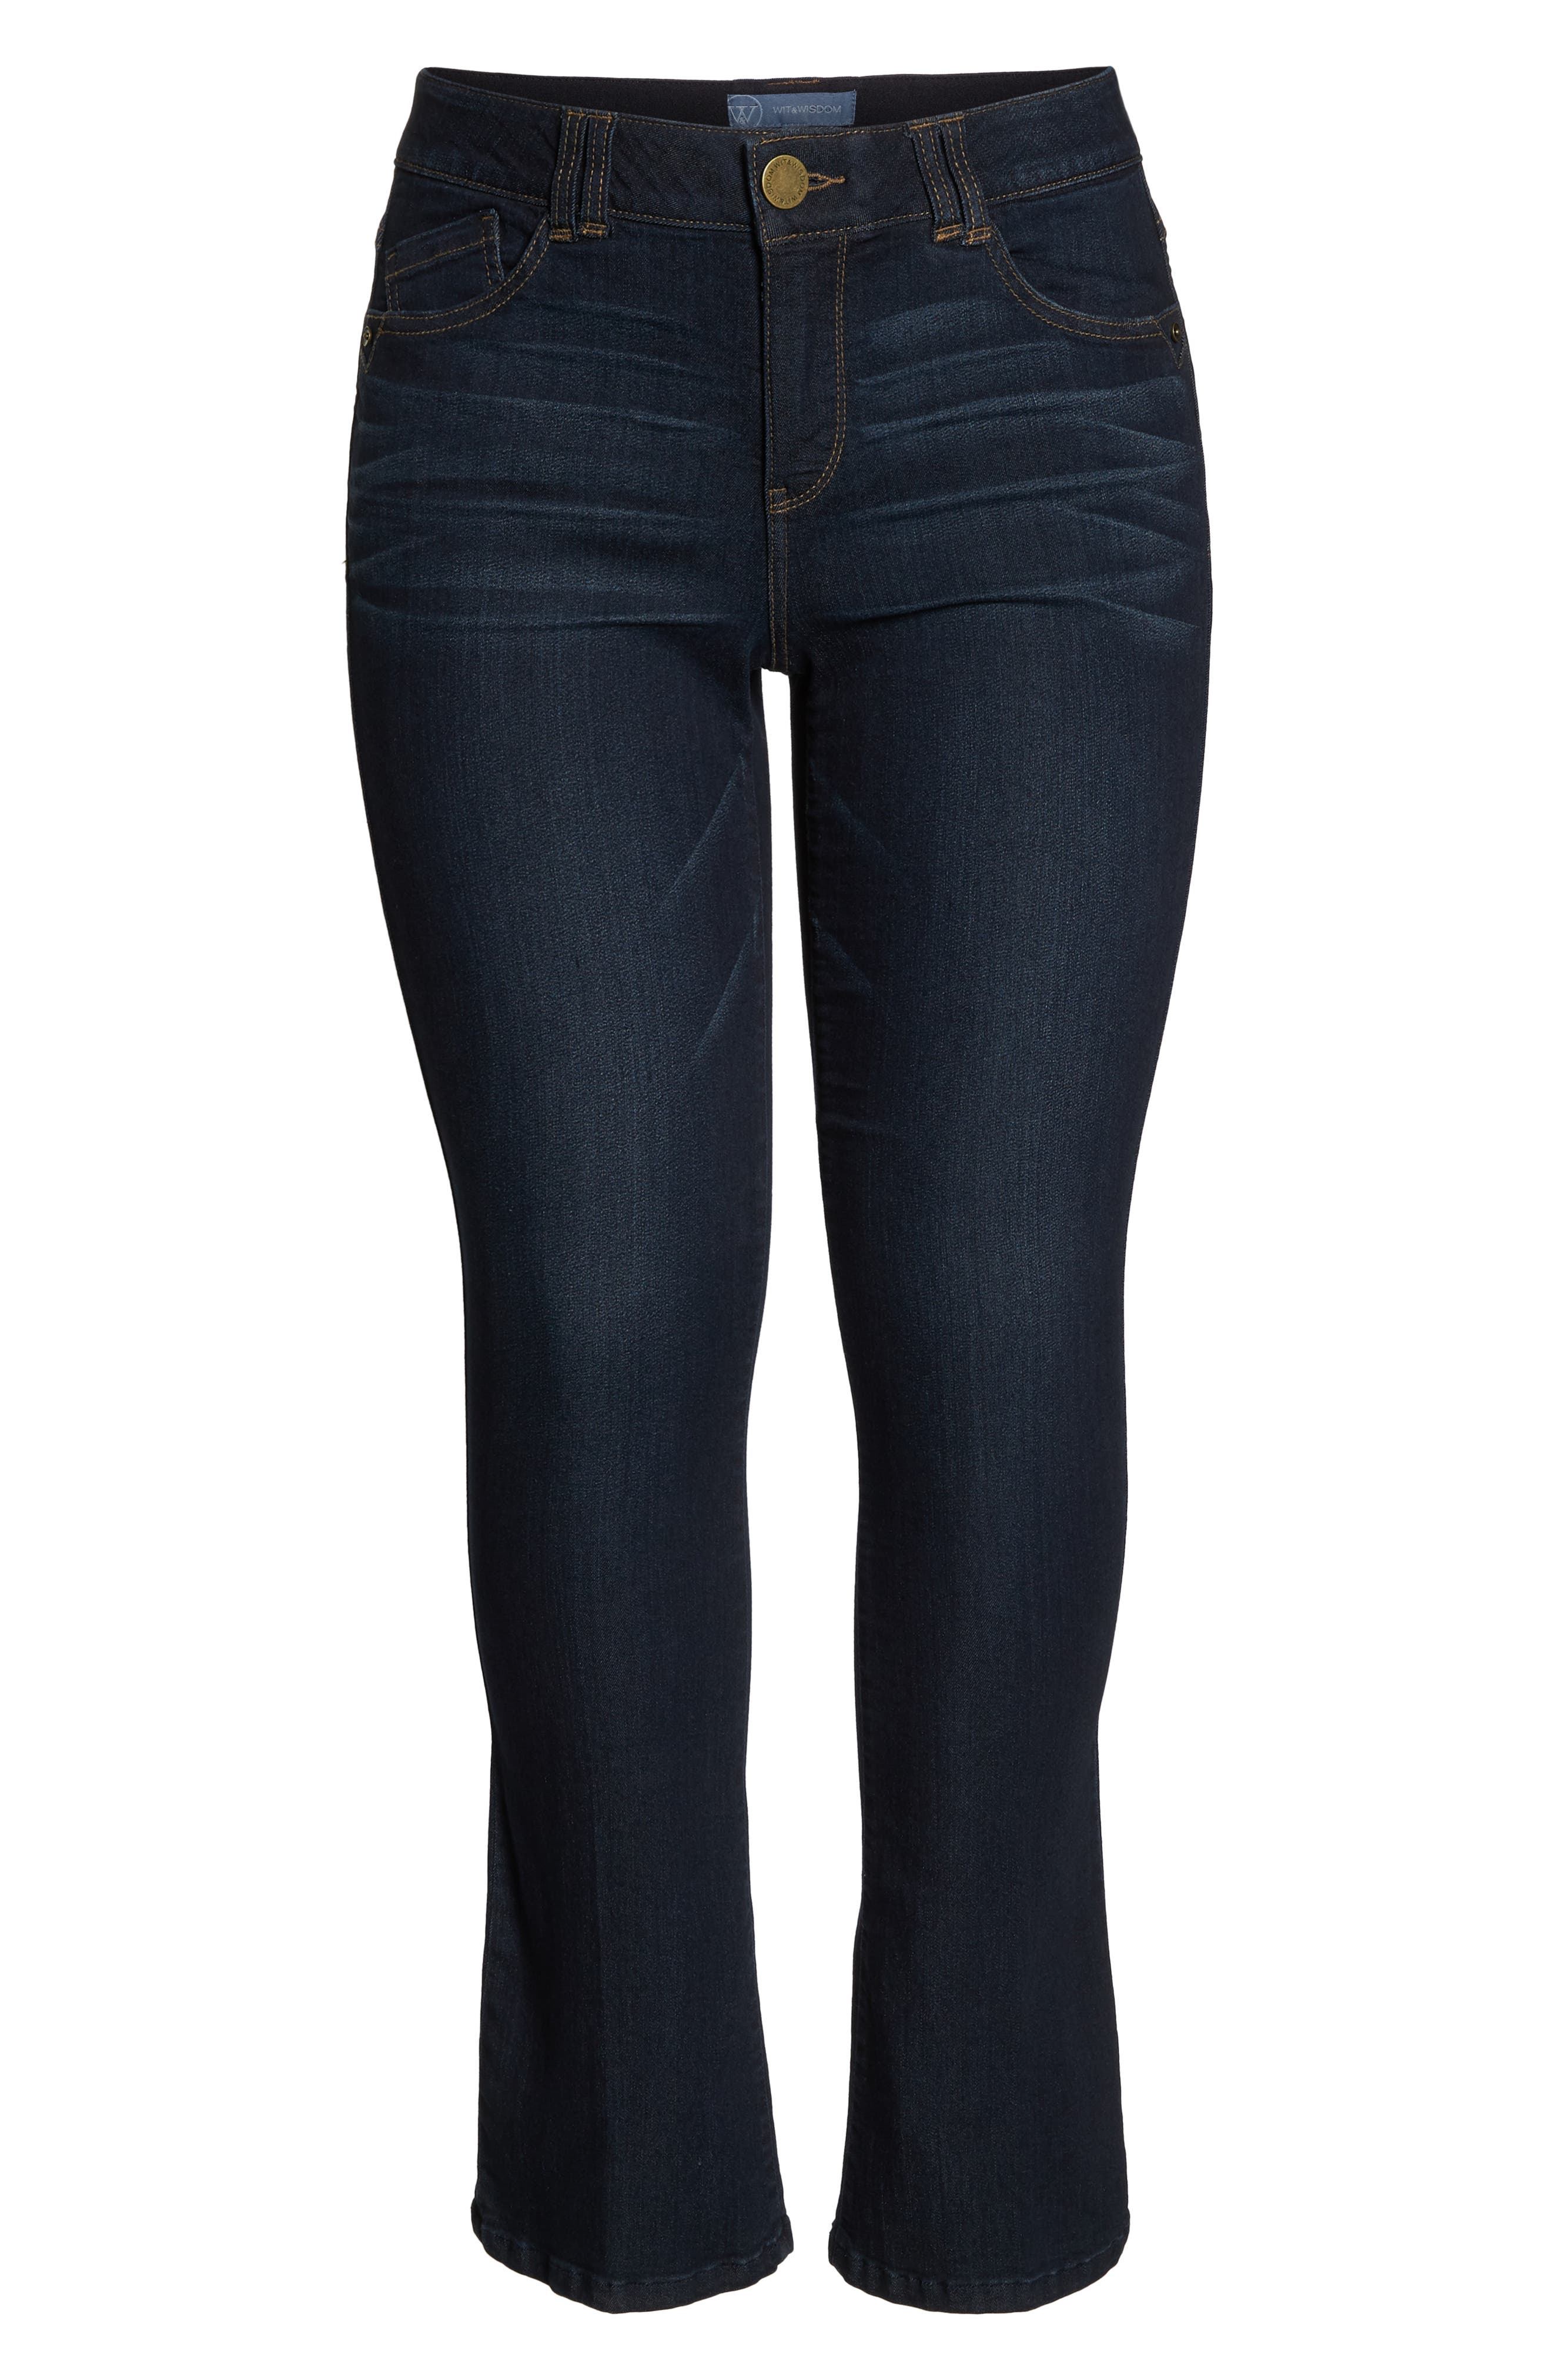 'Itty Bitty' Bootcut Jeans,                             Alternate thumbnail 7, color,                             INDIGO